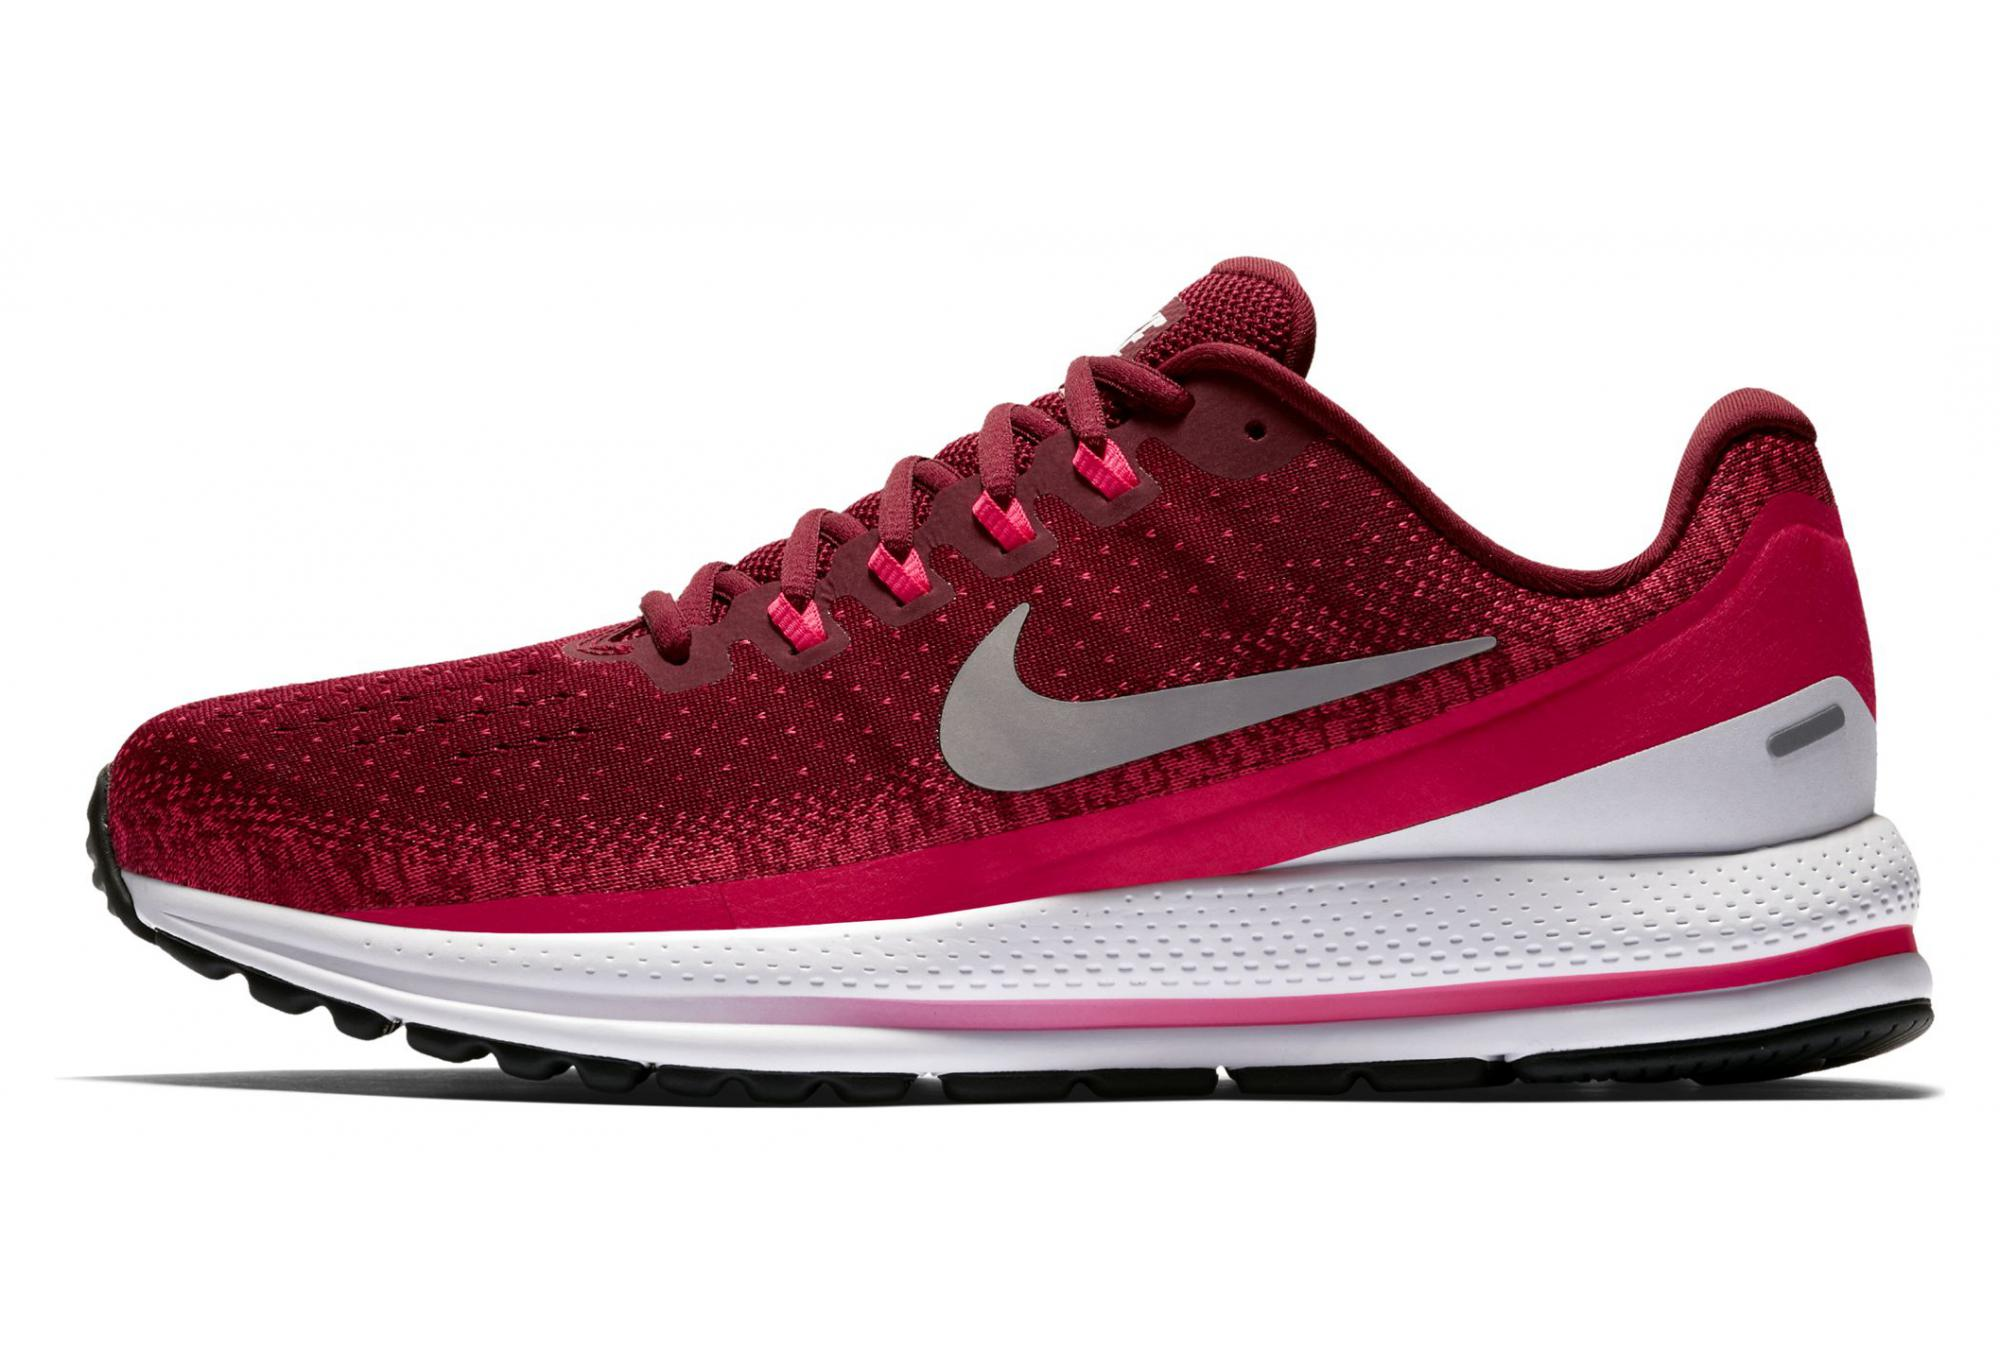 Nike Shoes Air Zoom Vomero 13 Red Men